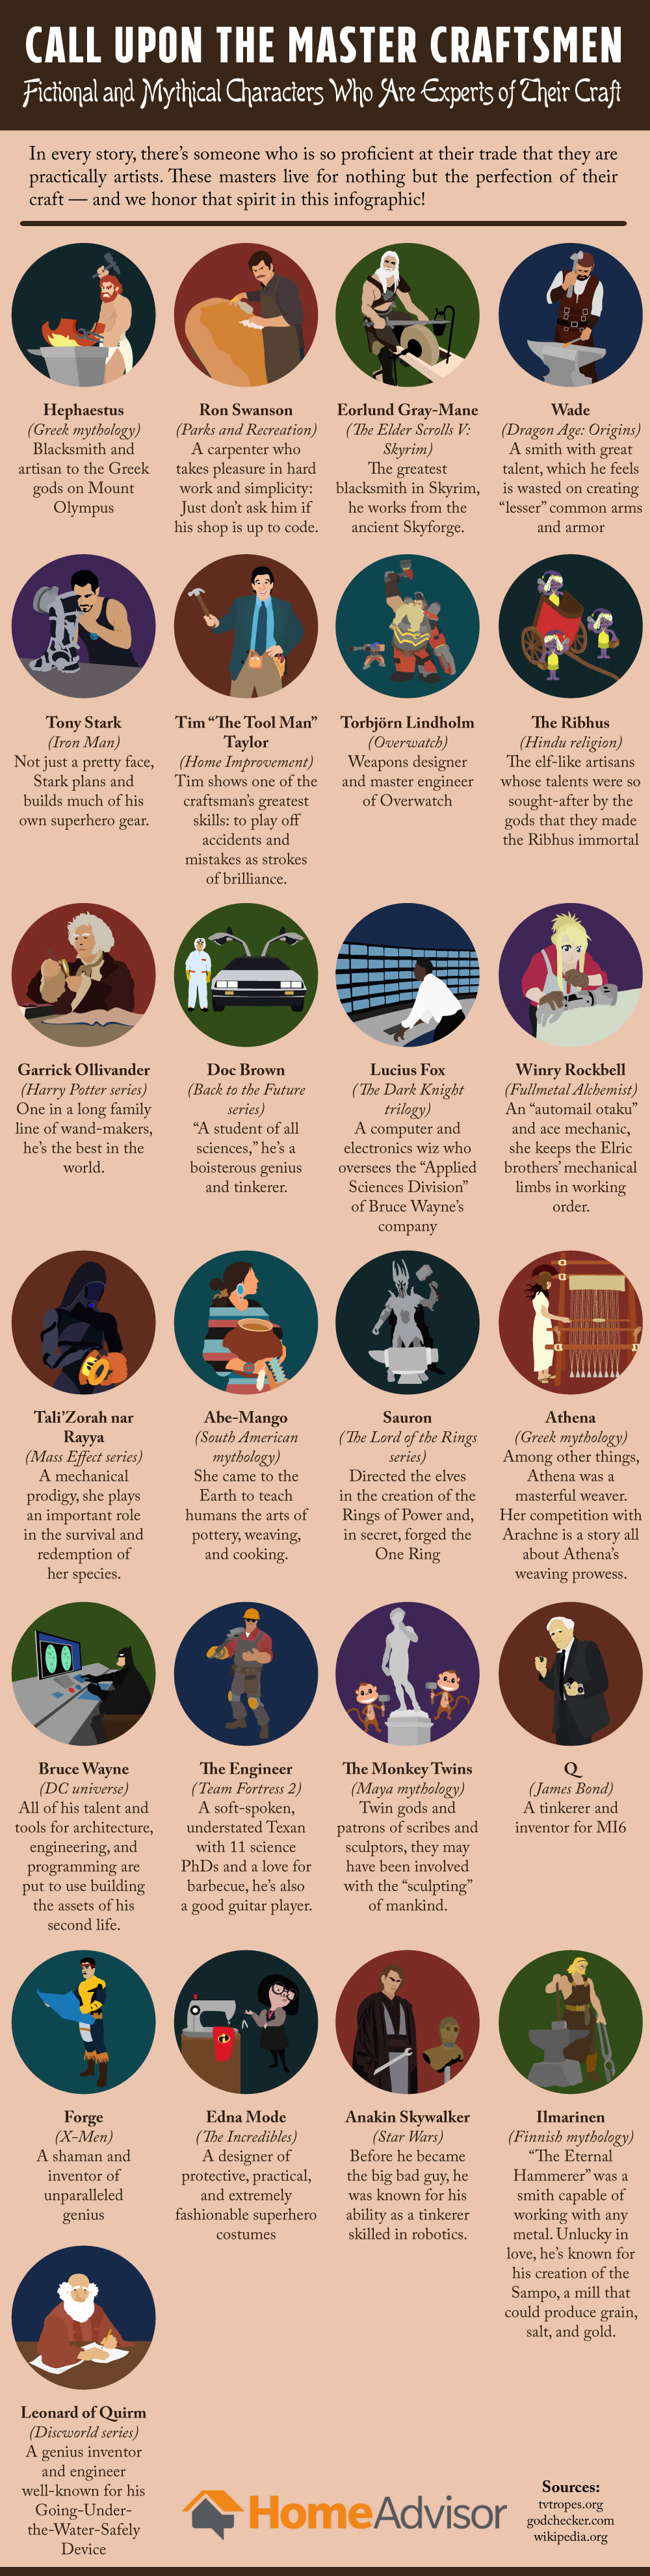 The Master Craftsmen: Fictional and Mythical Characters Who Are Experts of Their Craft